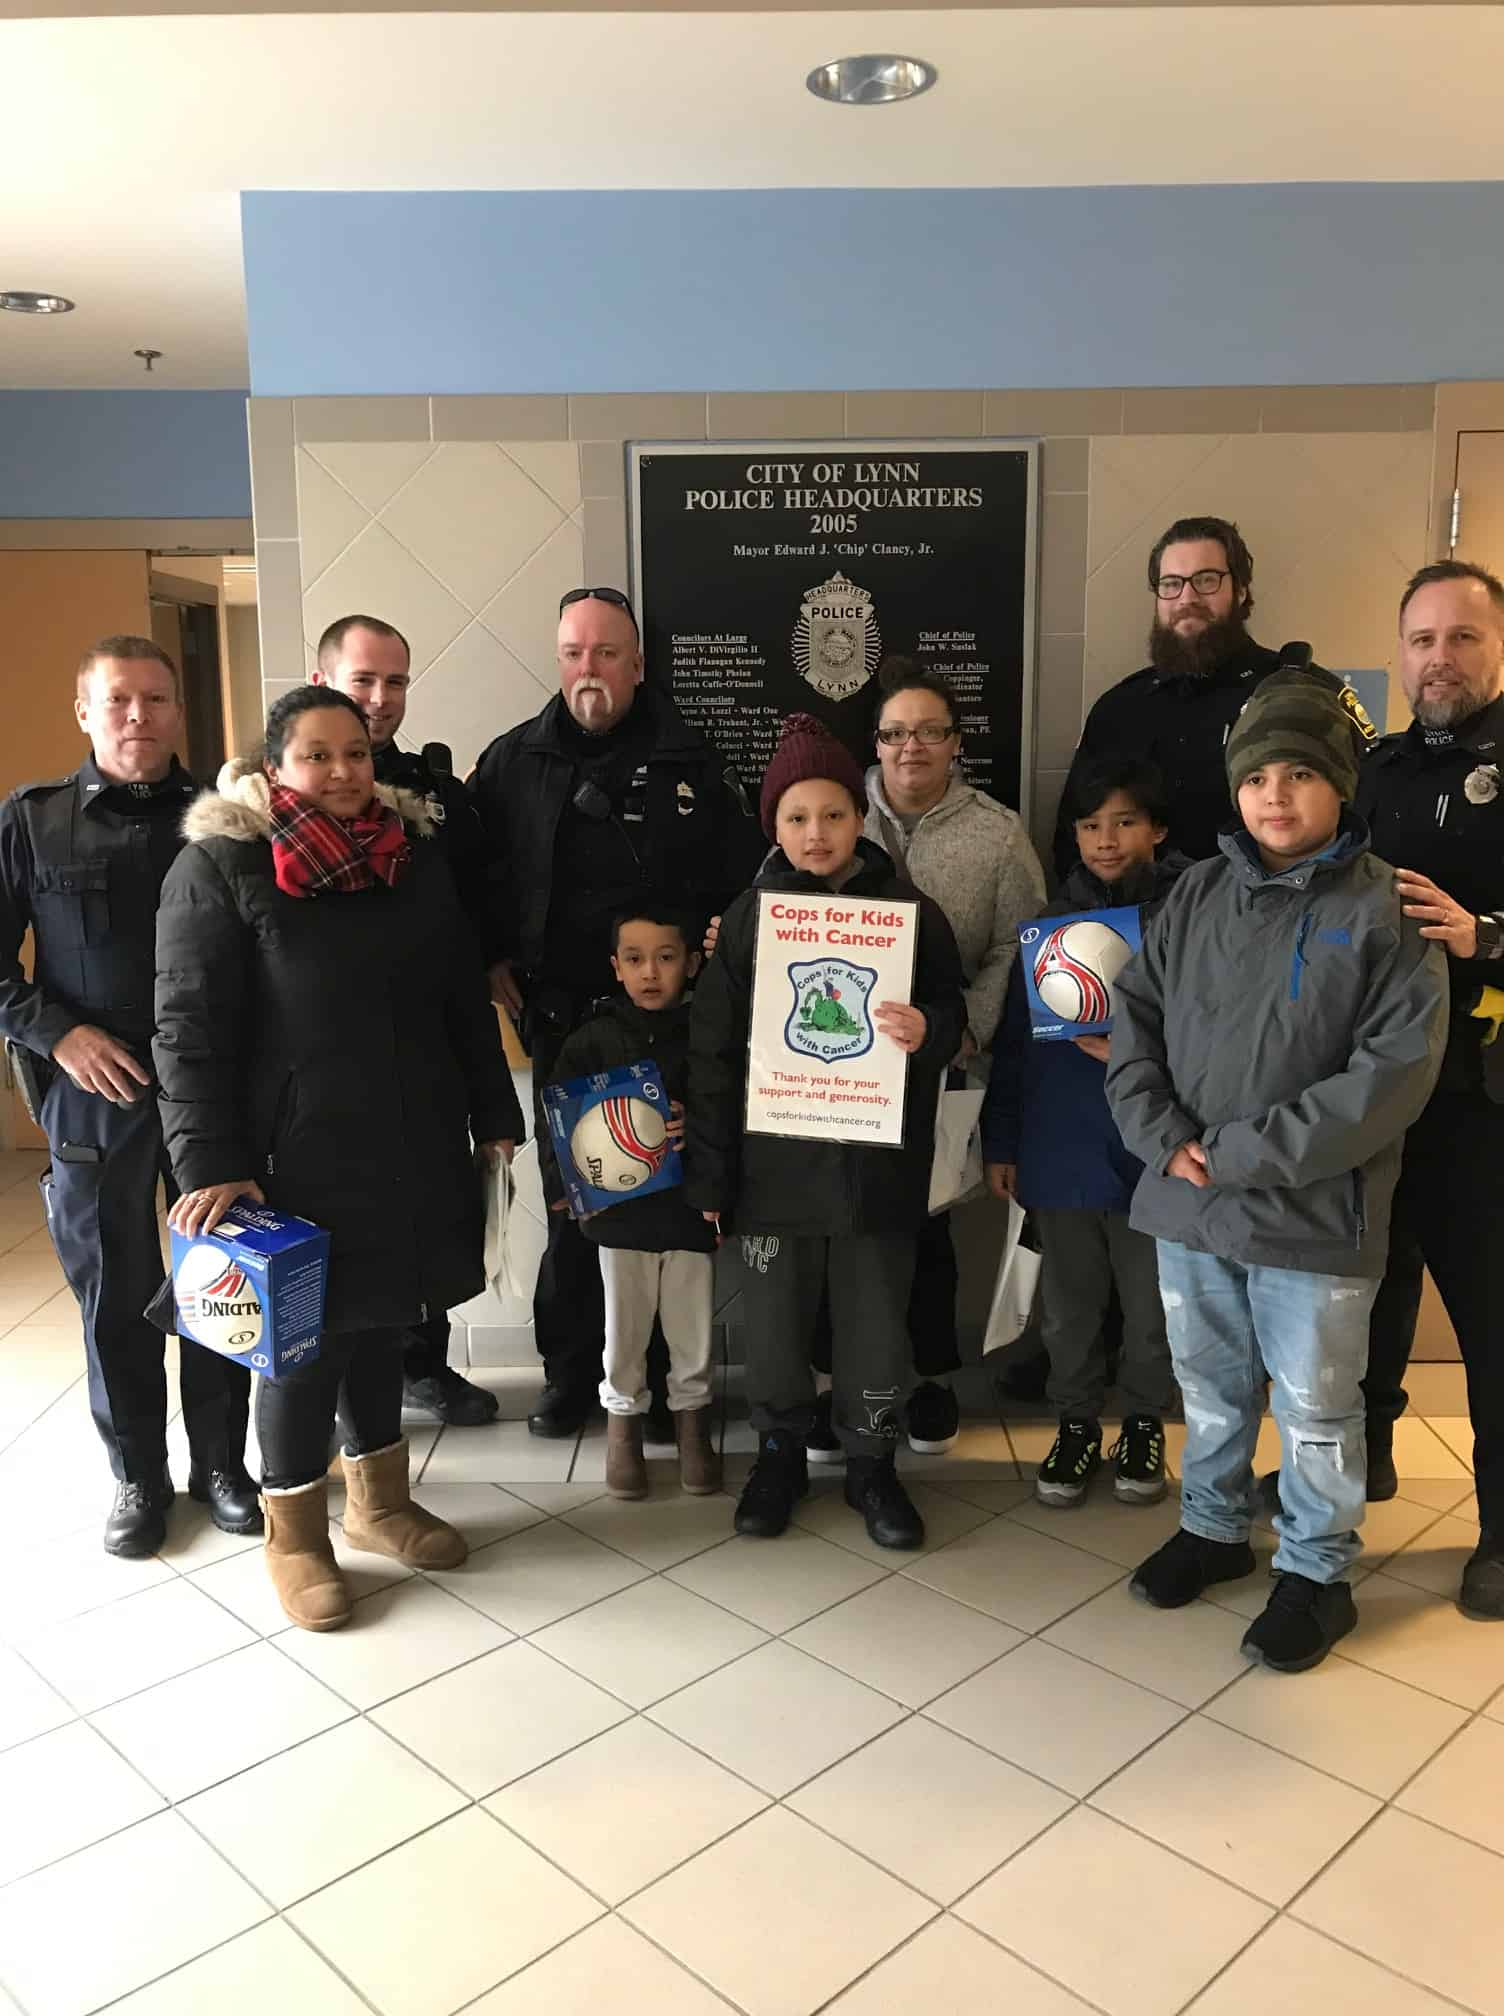 William Castillo and his family stopped by the LYNN Police Department to thank them for a donation